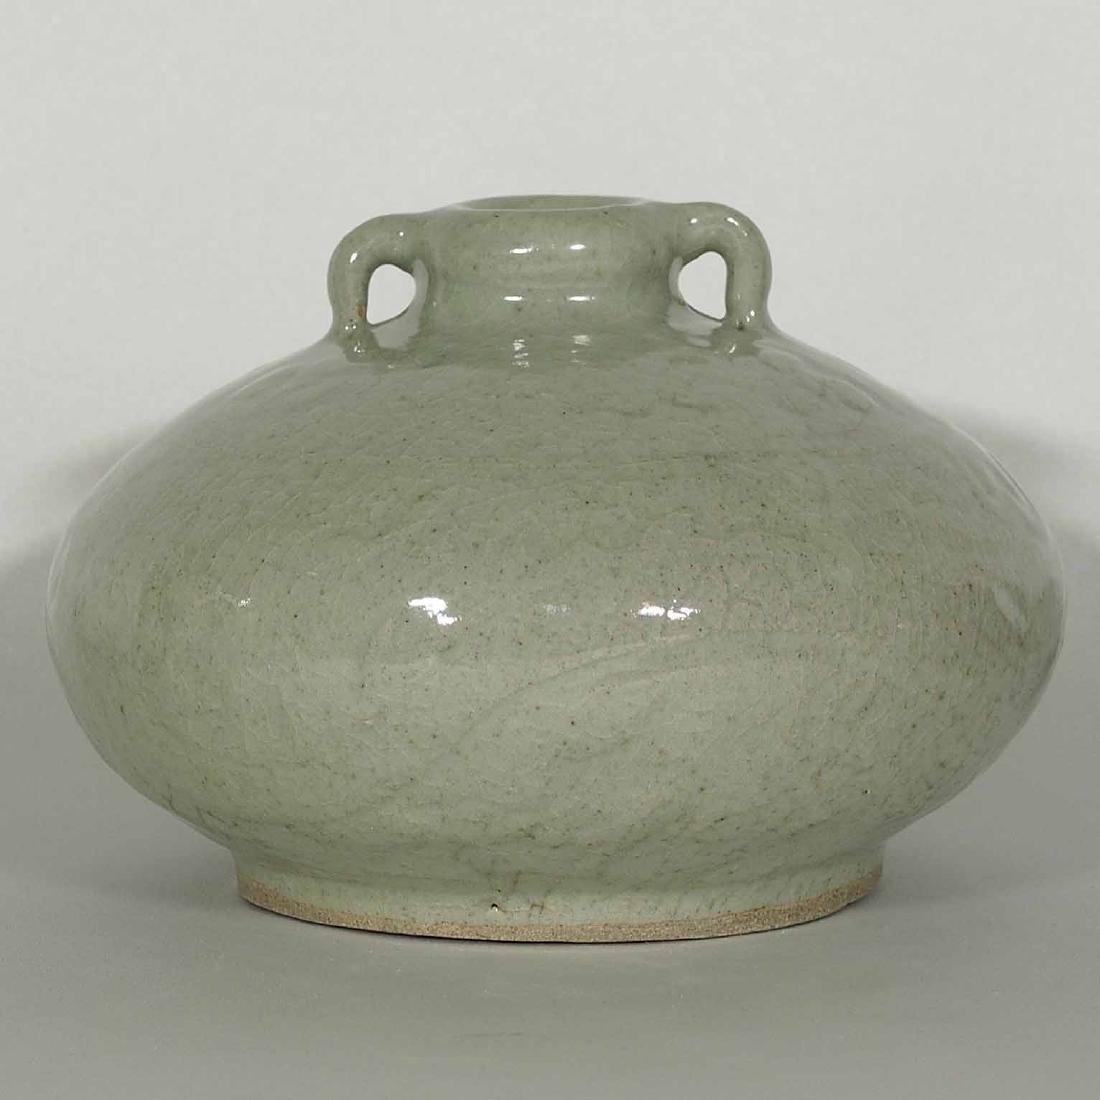 Qingbai Large Jarlet with Carved Dragon, Song Dynasty